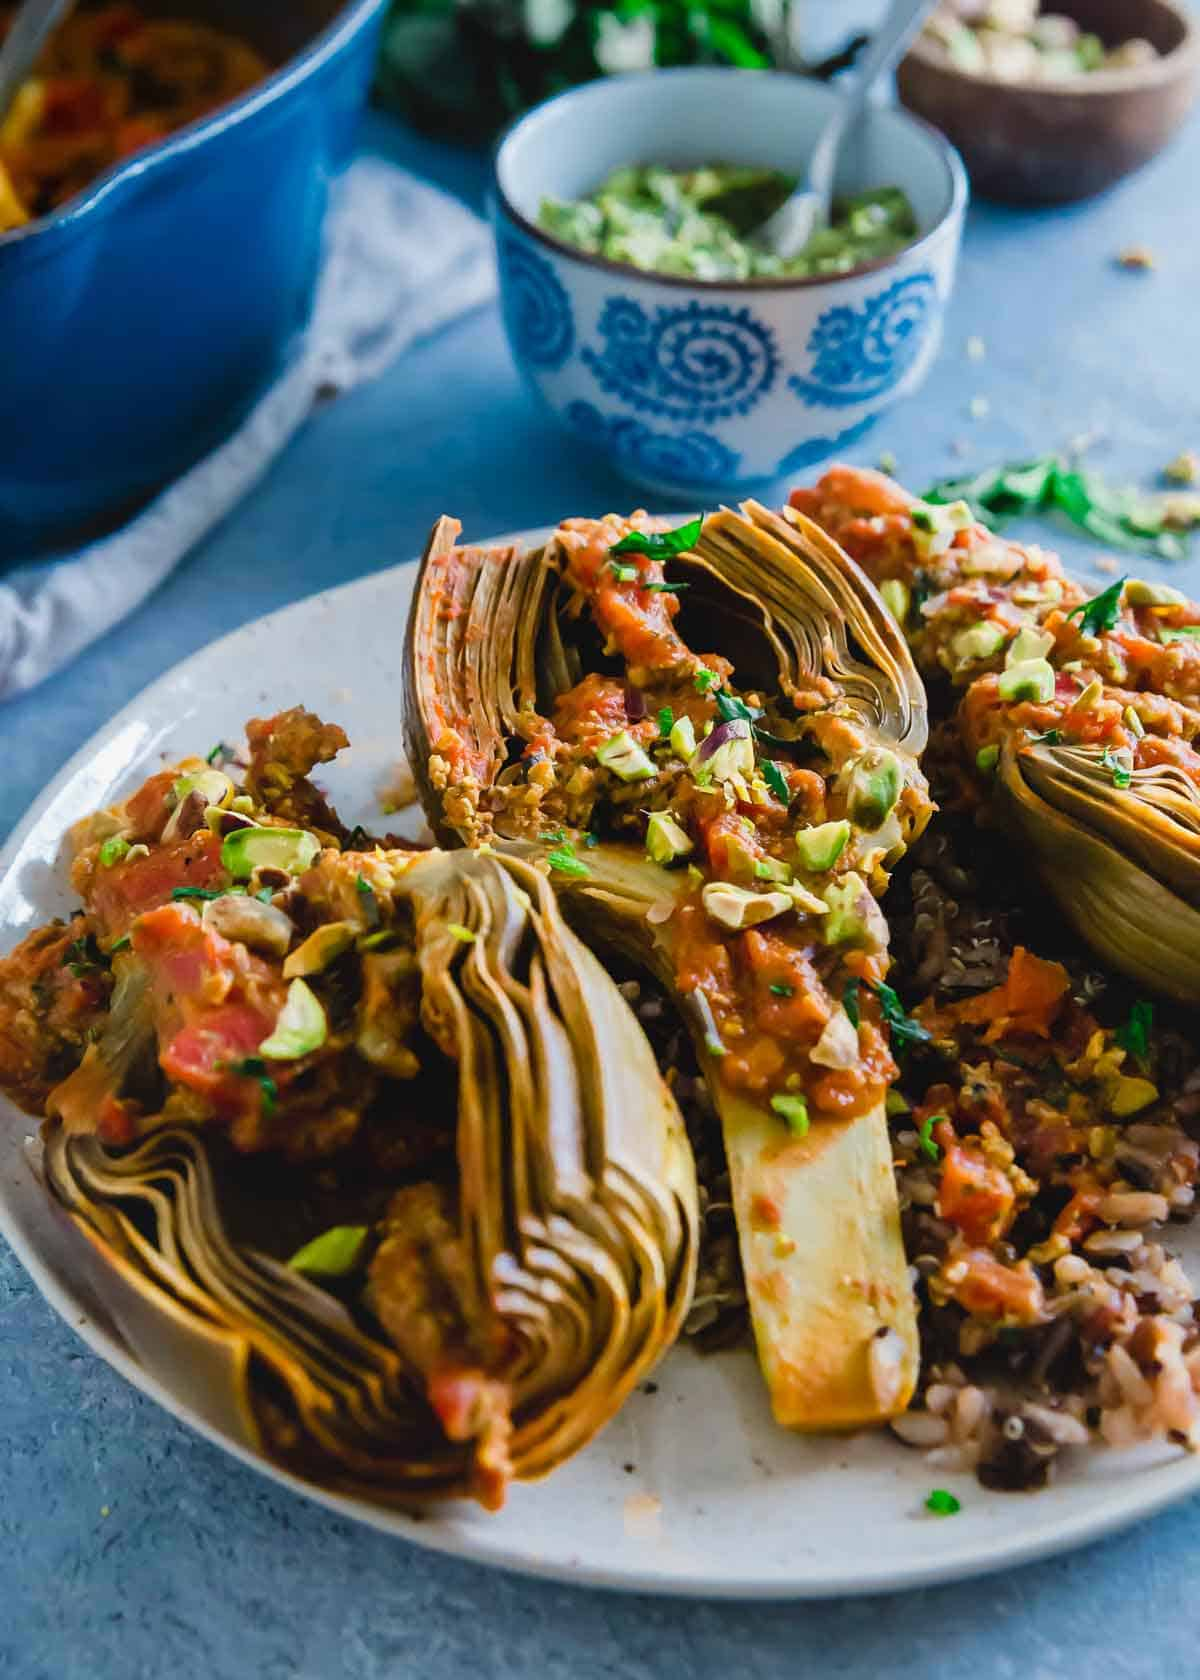 Simple tomato braised artichokes cooked until tender and served with a pistachio basil pesto.